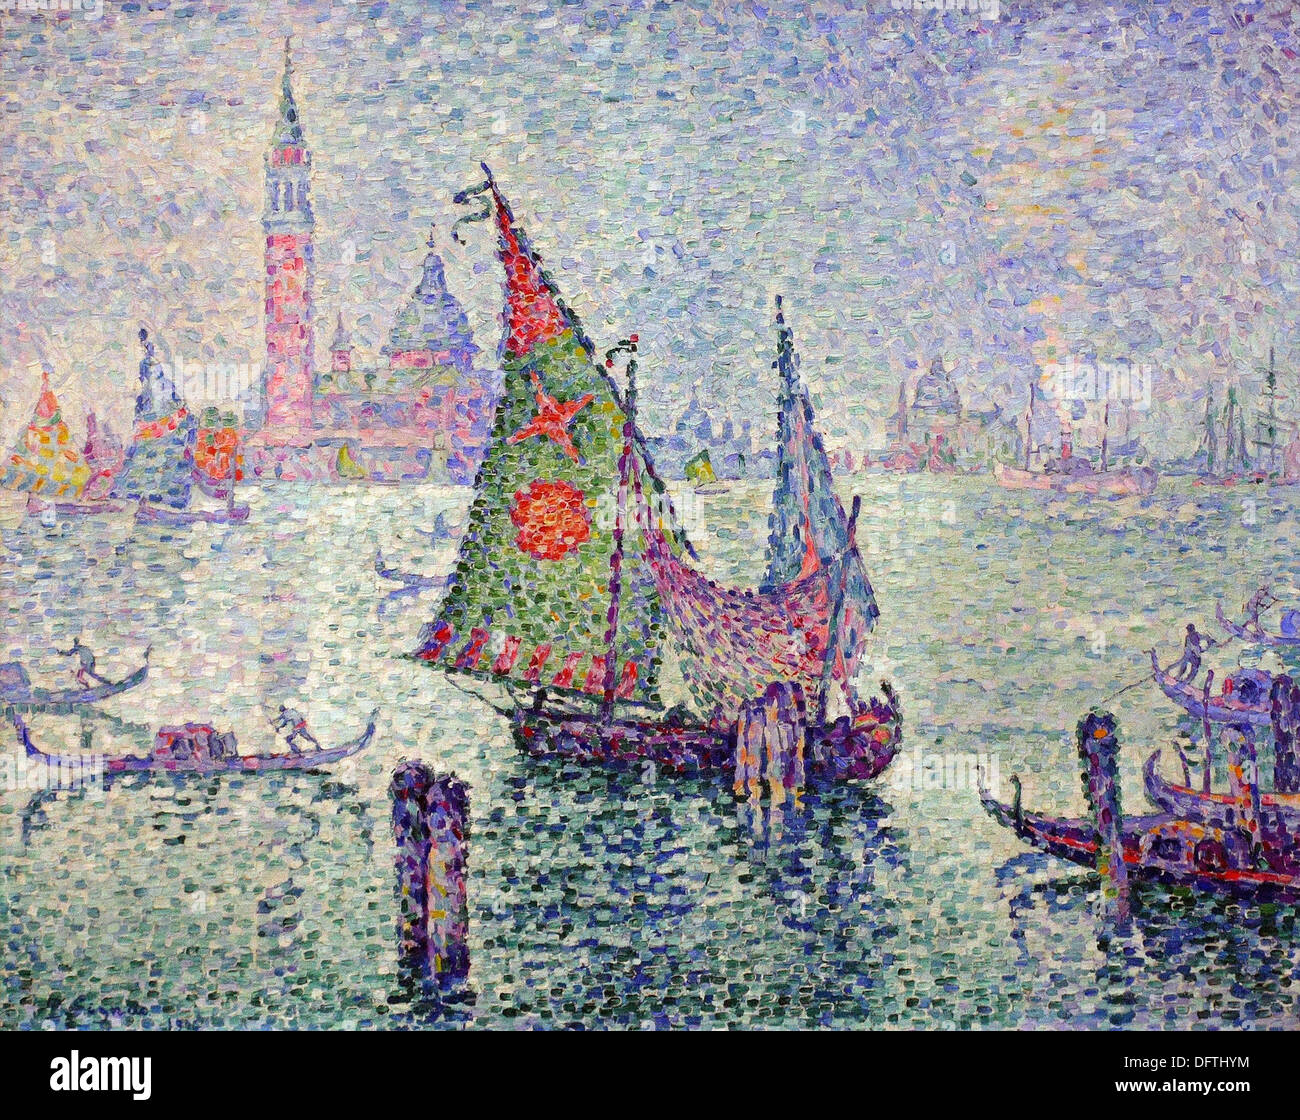 Paul Signac - The Green Sail - 1904 - Orsay Museum - Paris - Stock Image